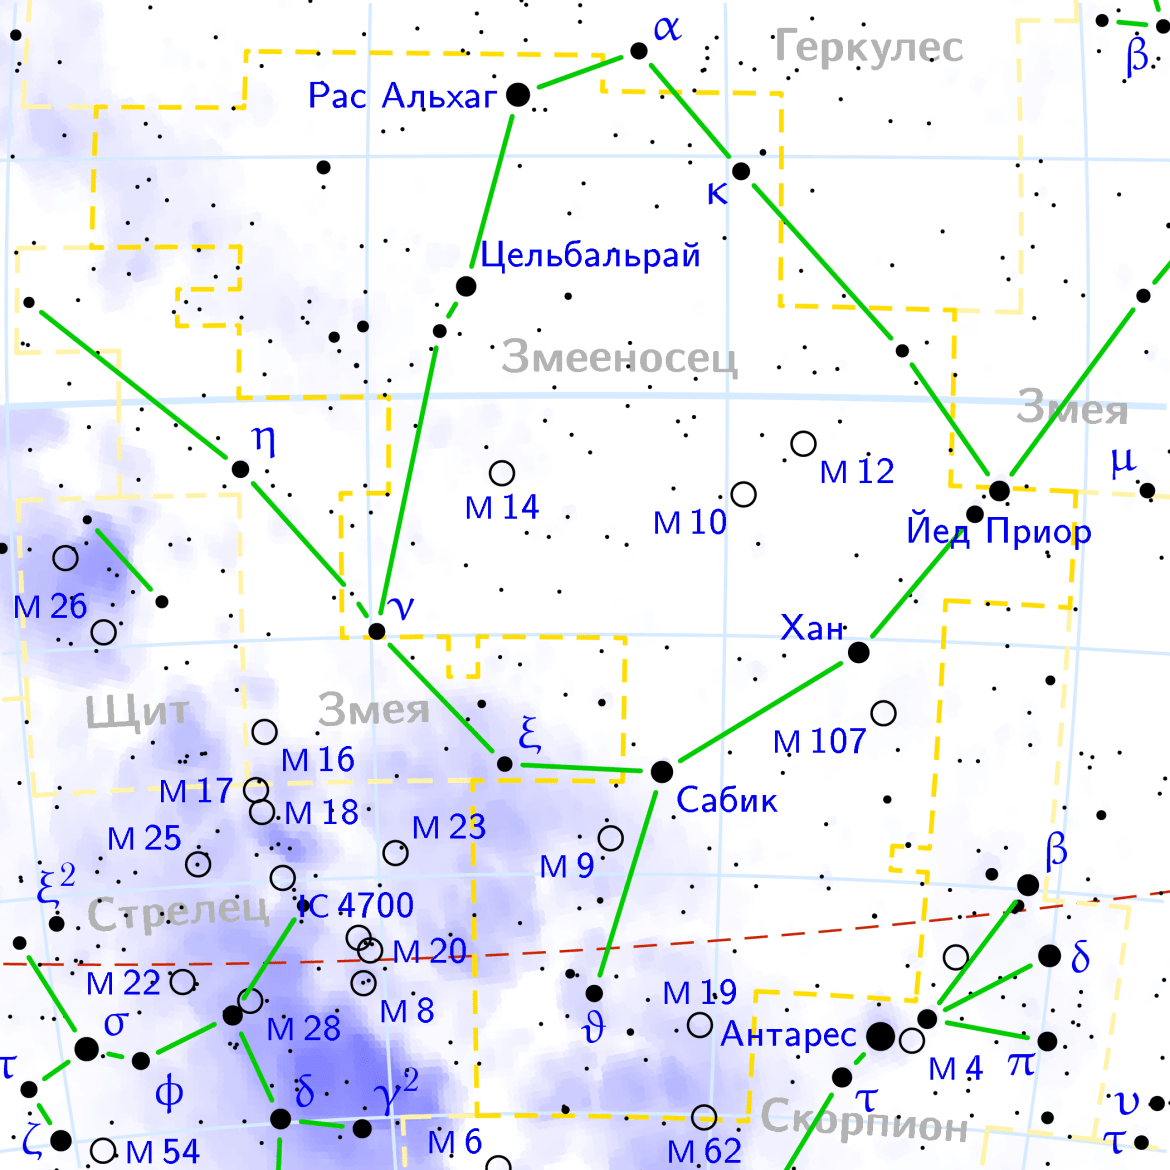 ophiuchus_constellation_map_ru_lite